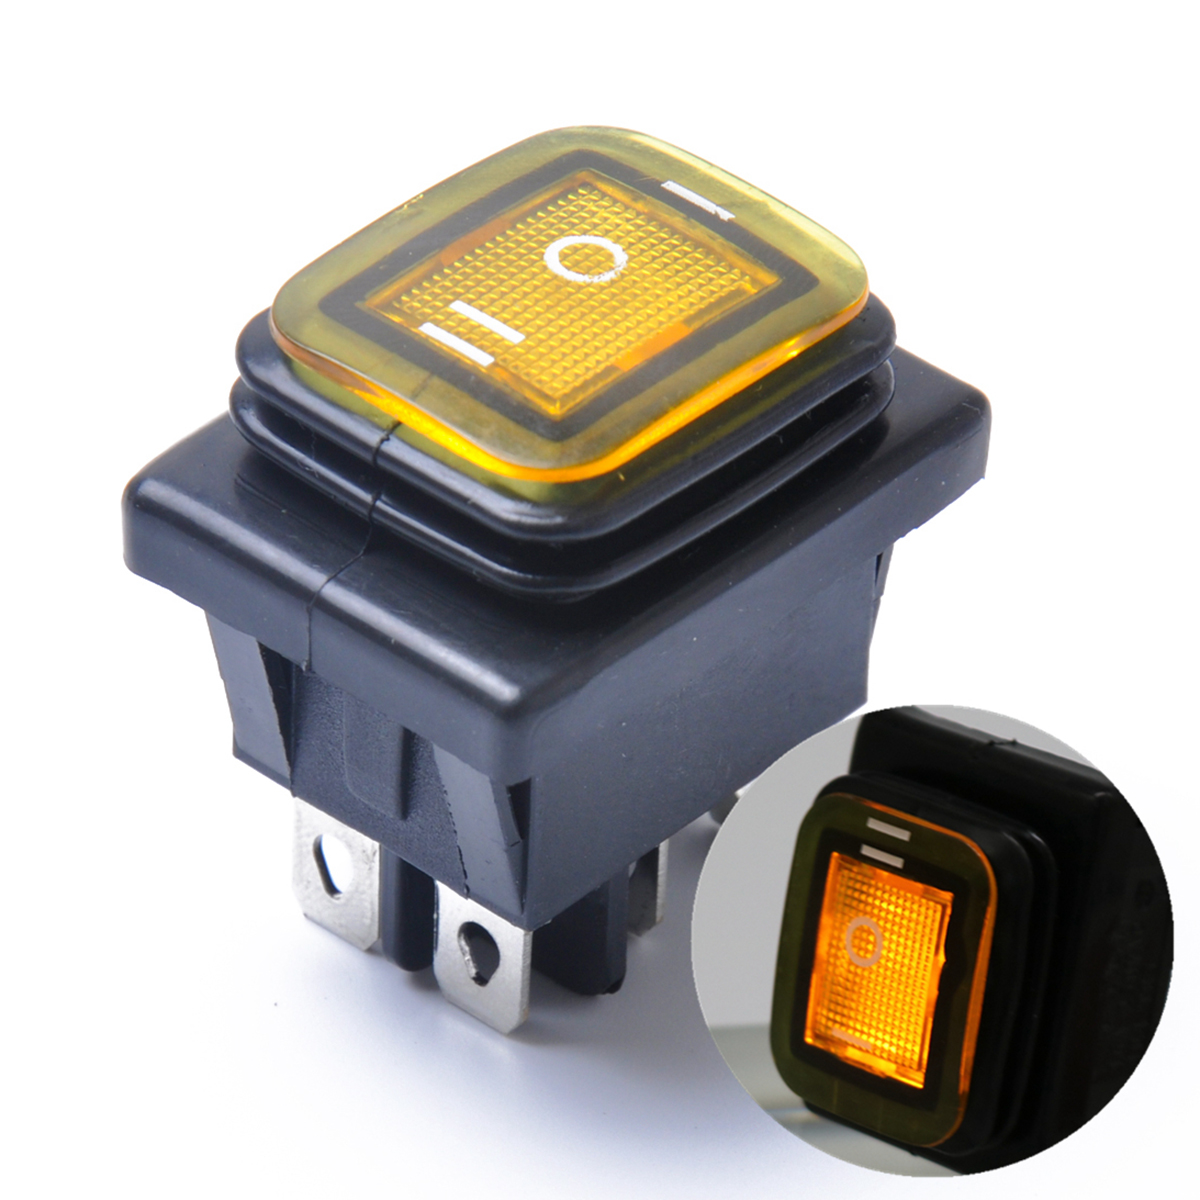 Boat Parts & Accessories Atv,rv,boat & Other Vehicle Rocker Toggle Switch On-off-on 4 Pins 12v Dc Car Boat Automobiles Waterproof Led Latching Switches